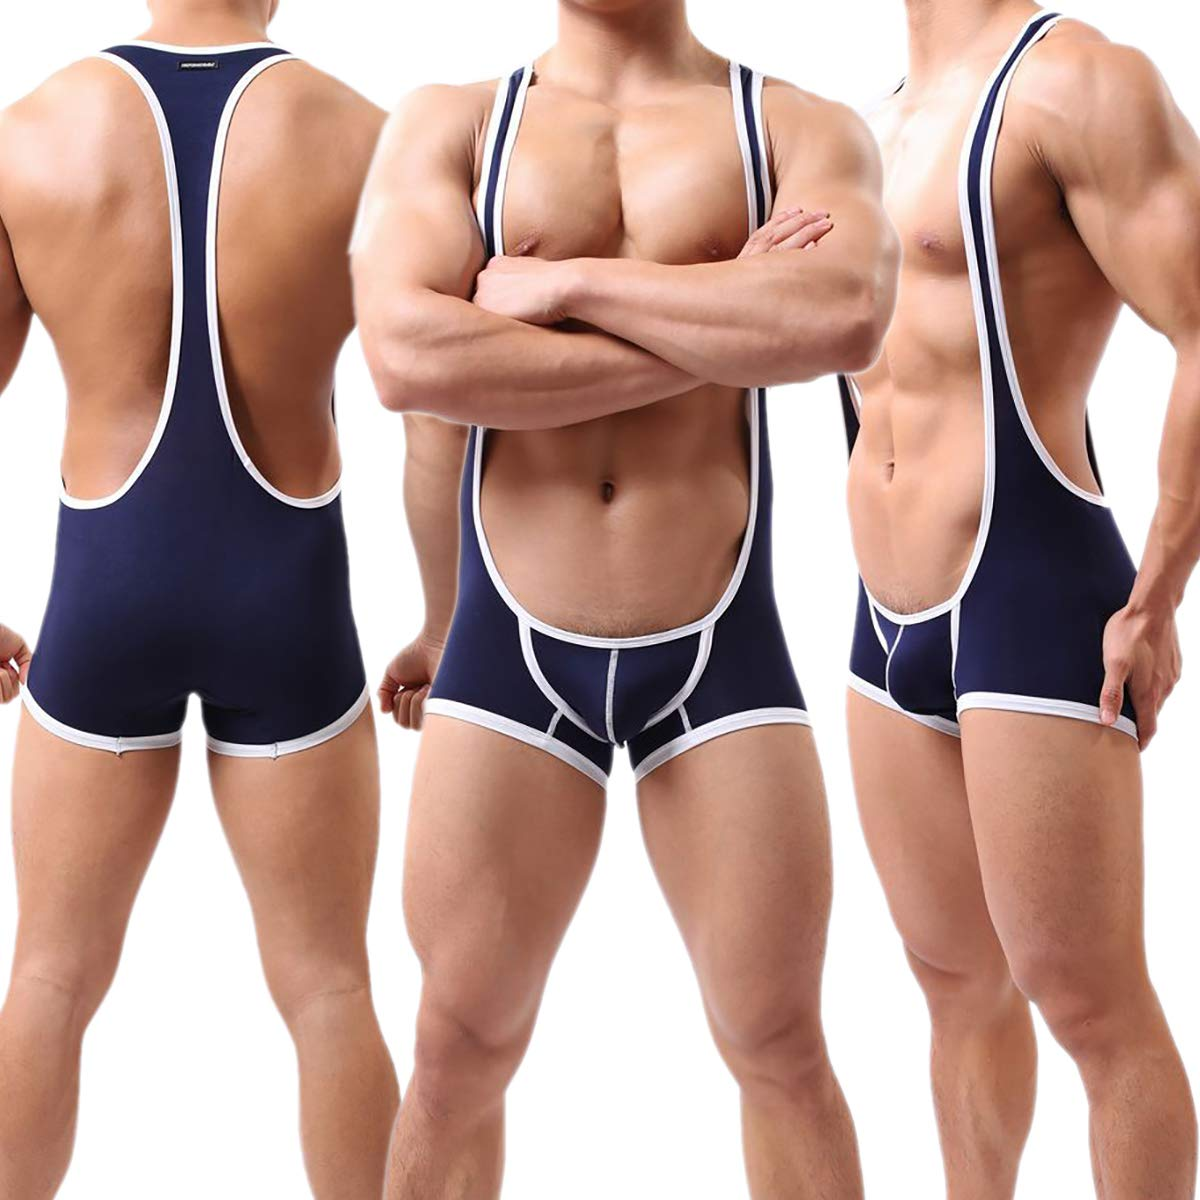 Yeke Men Sexy Body Leotard Freestyle Wrestling Singlet Backless Smooth Bodysuit W06 (M, Blue)